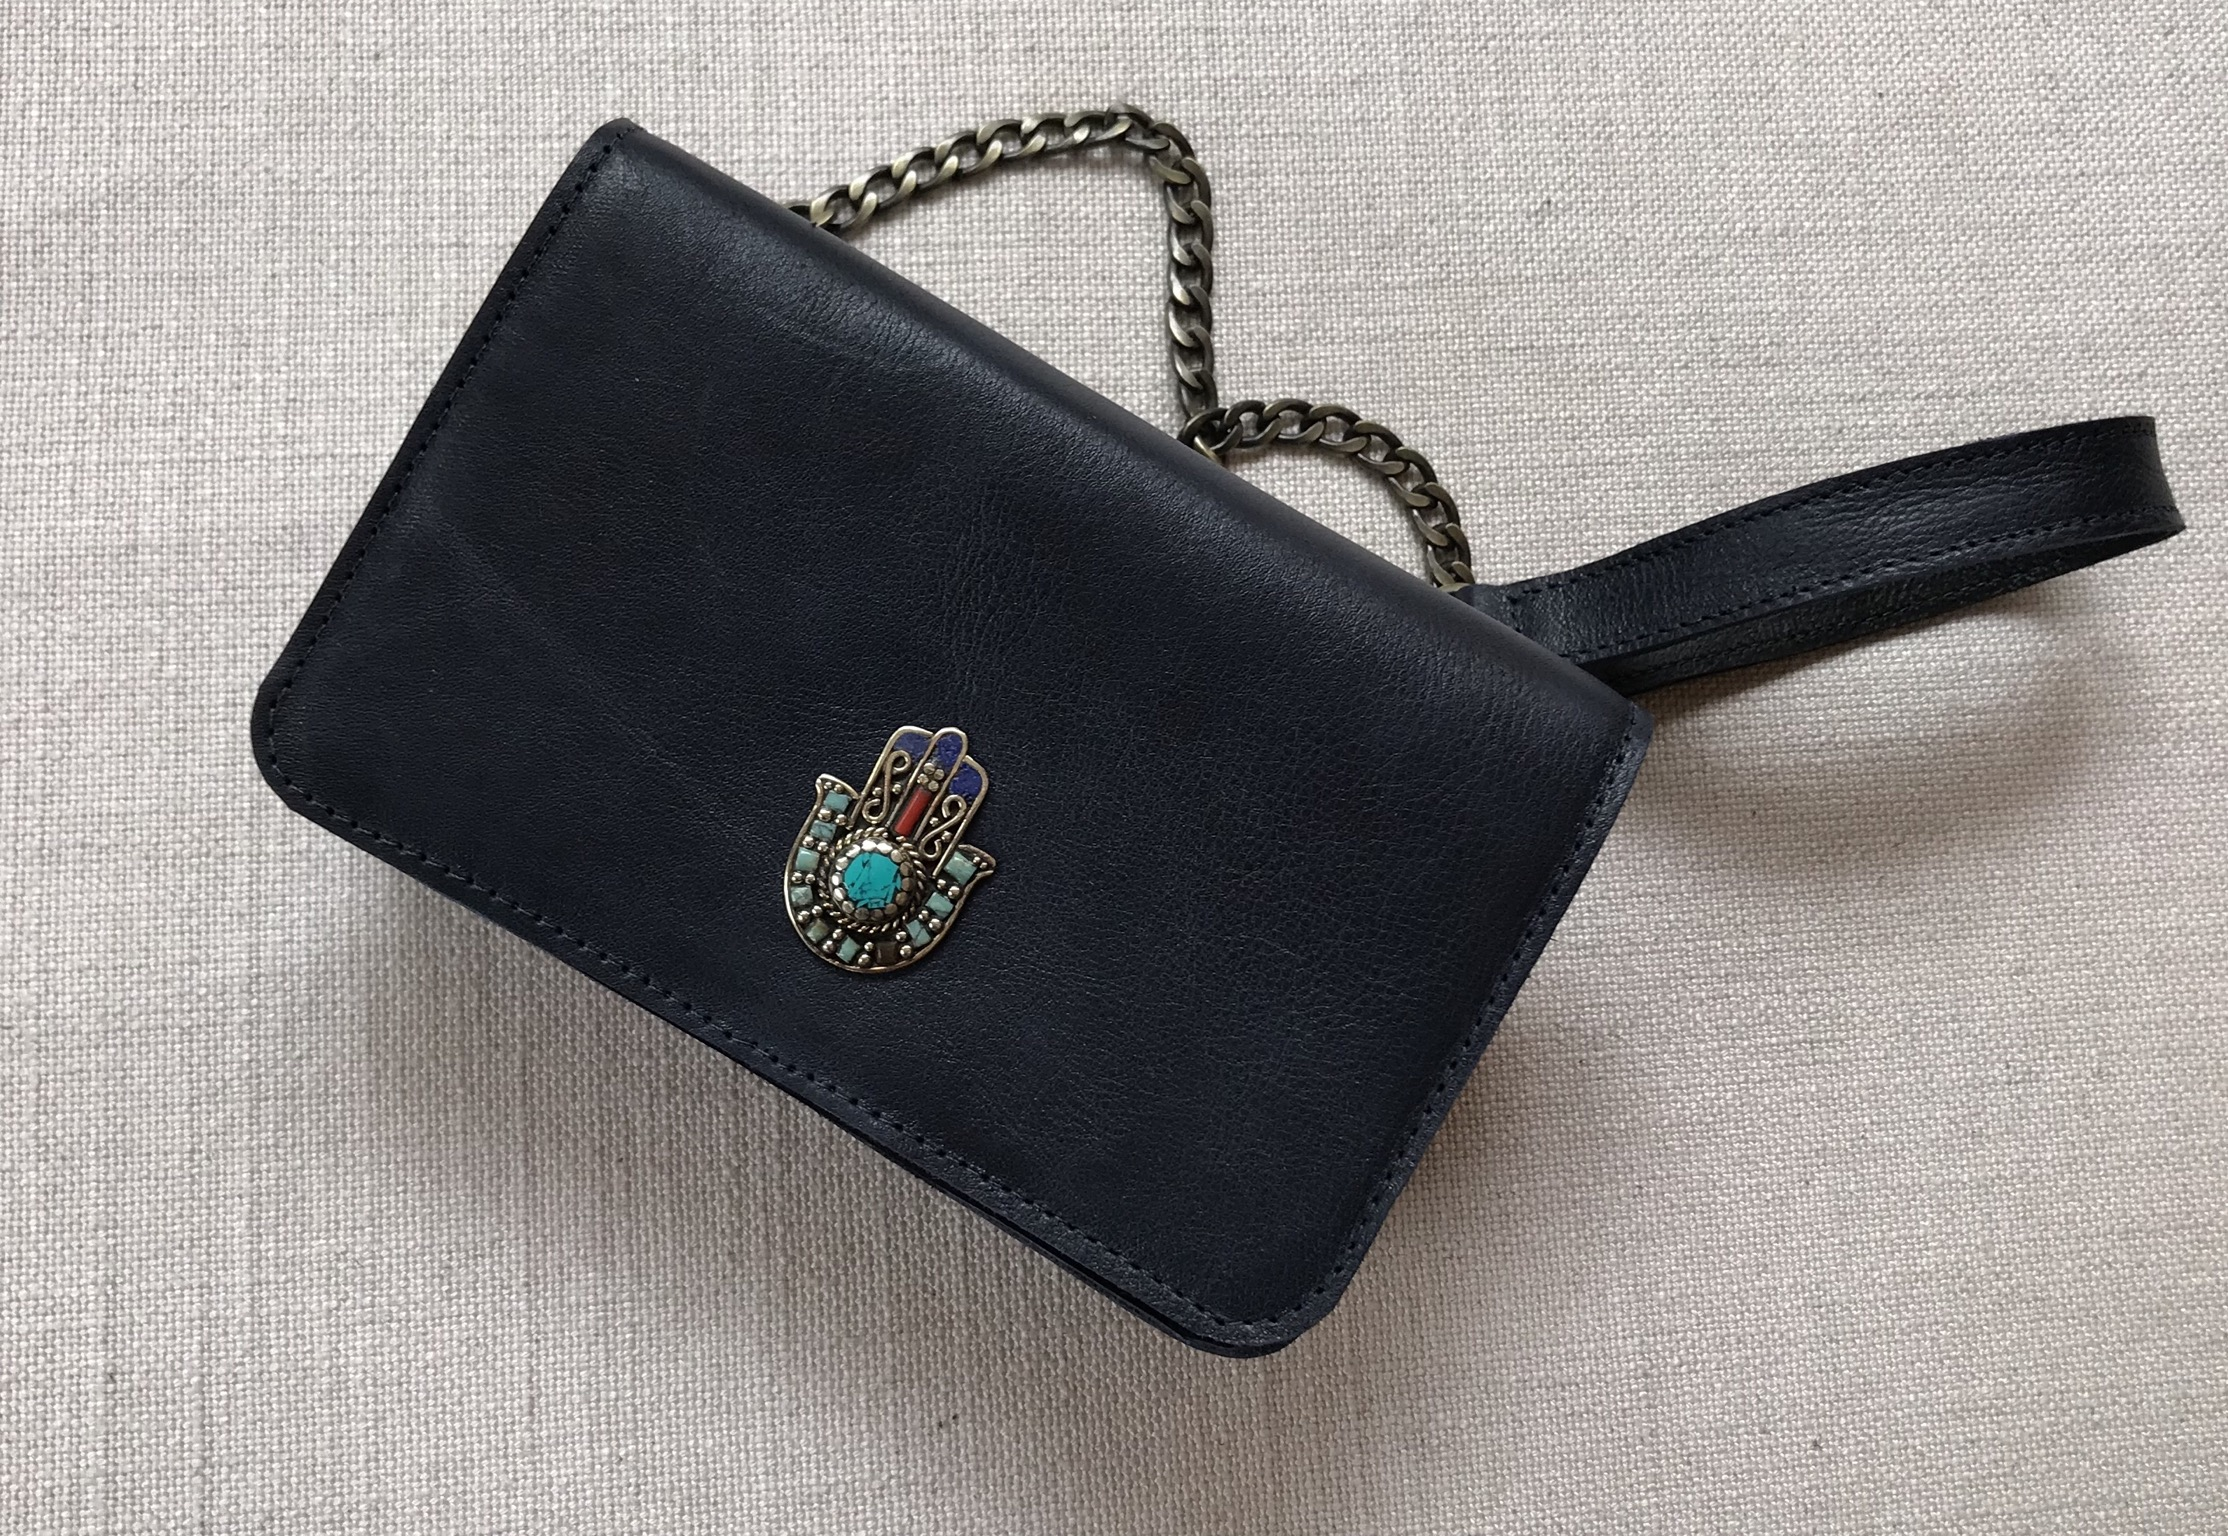 Bag mini leather blue navy with artisanal jewelry